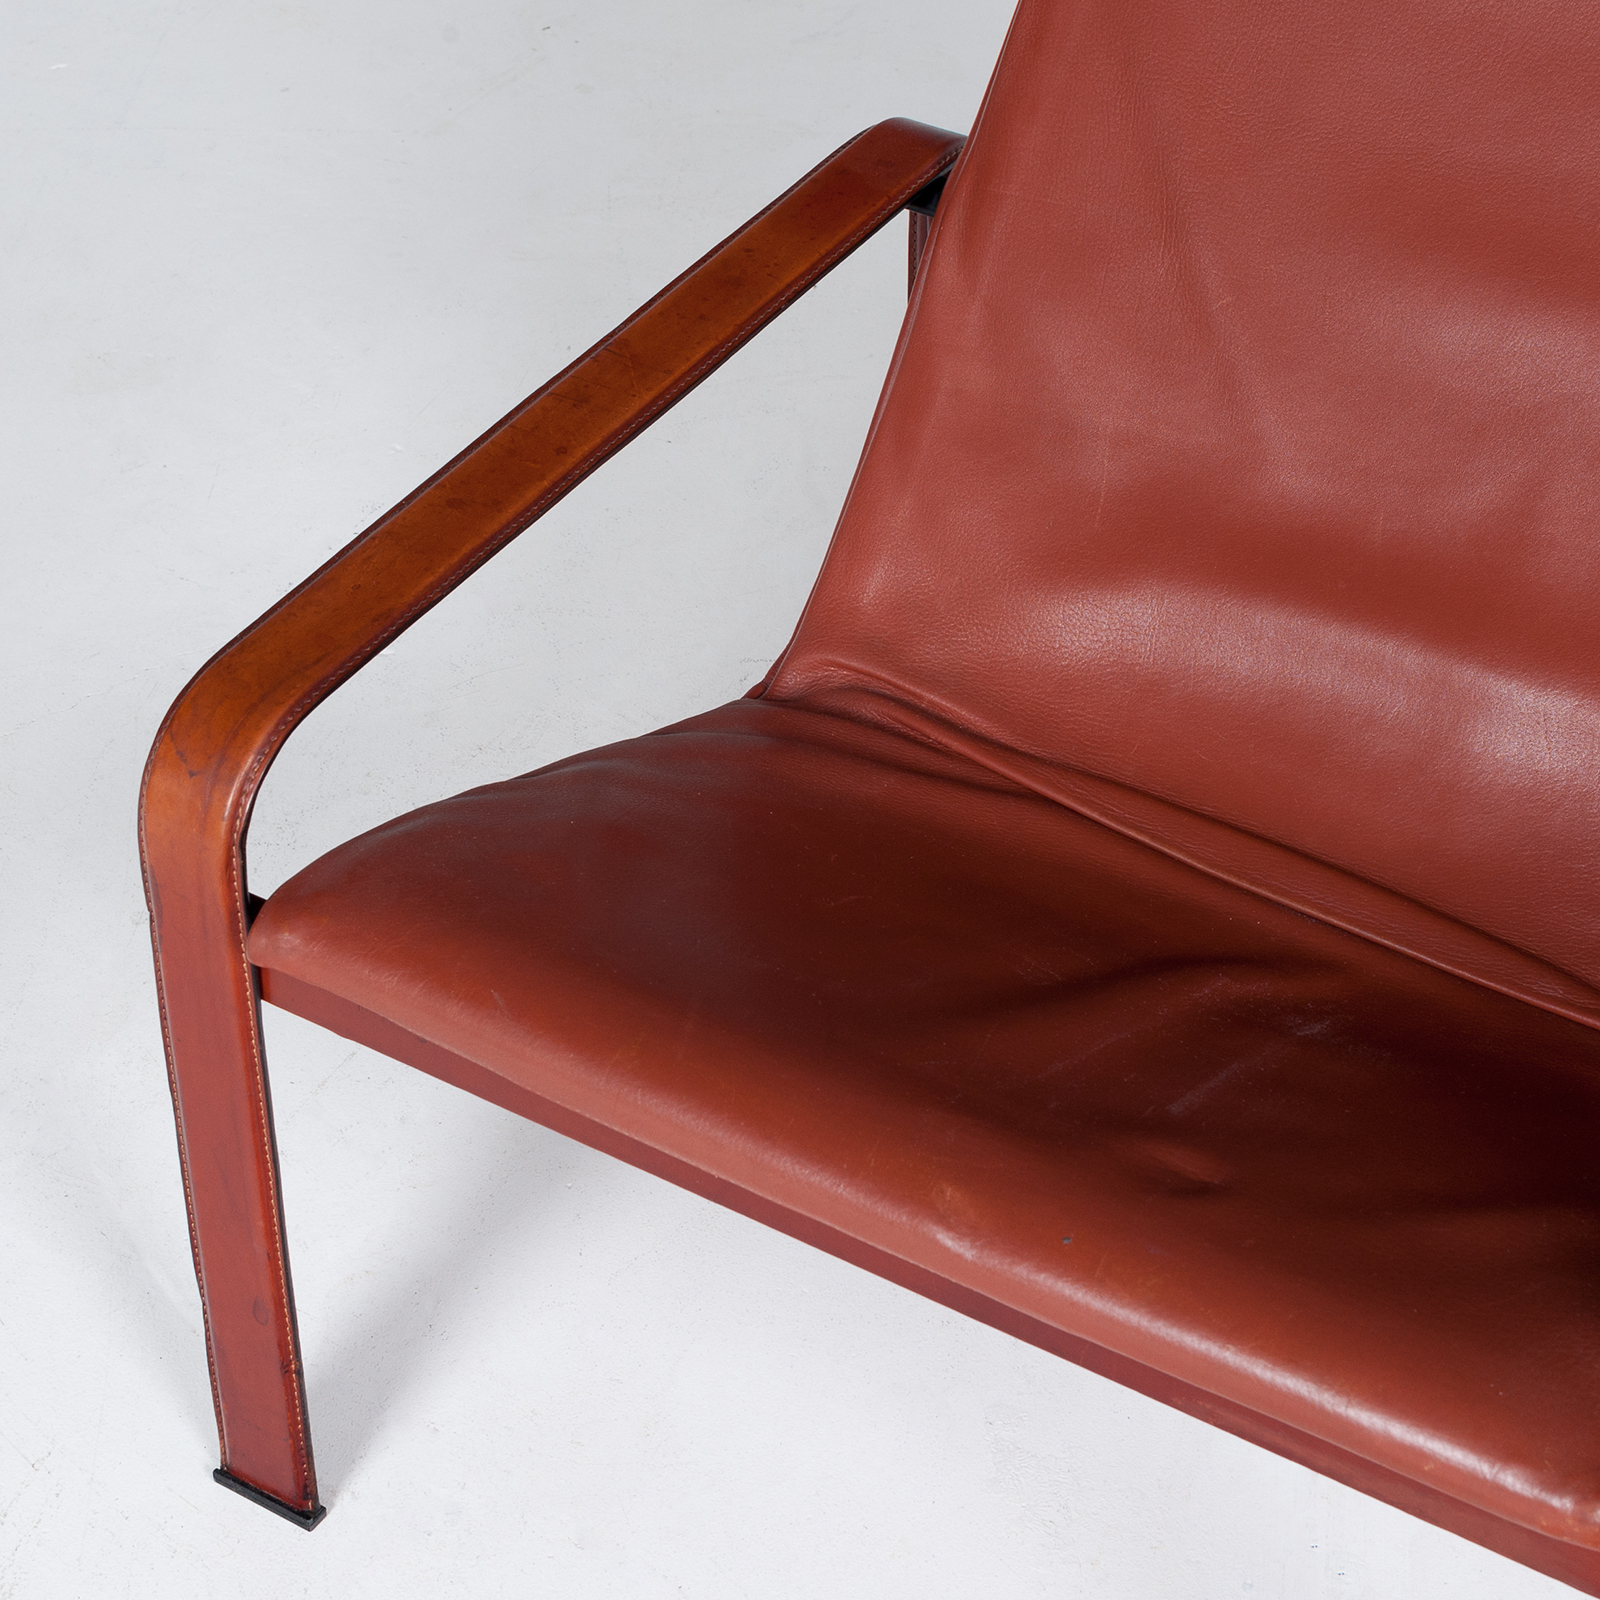 Armchair In Tan Leather By Matteo Grassi (mt Ac 194 128 It) 954